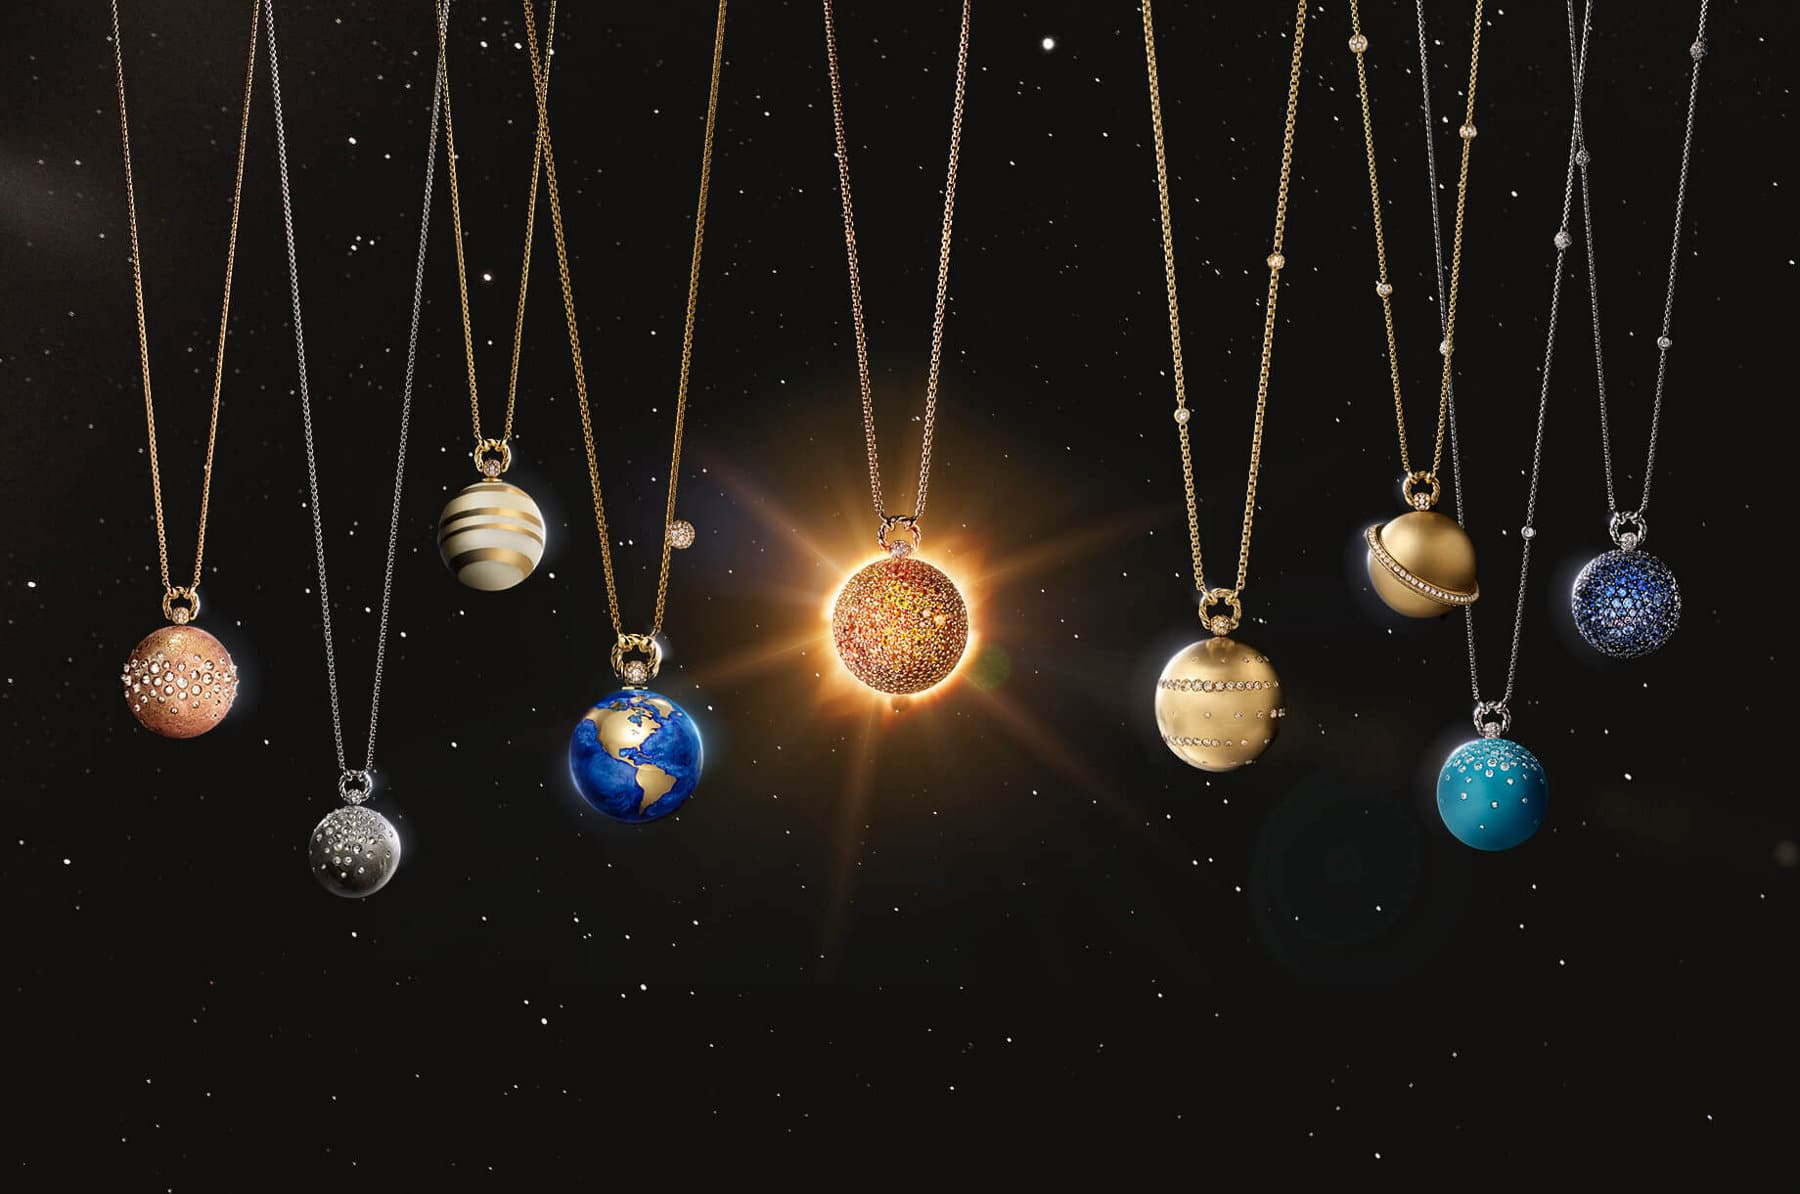 A color photo shows nine David Yurman Solari Planet necklaces in a row of in front of a starry night sky. Each necklace's pendant depicts a planet in the solar system with different gemstones and materials. In the center of the row is a pendant necklace depicting the sun with golden light shining behind it.